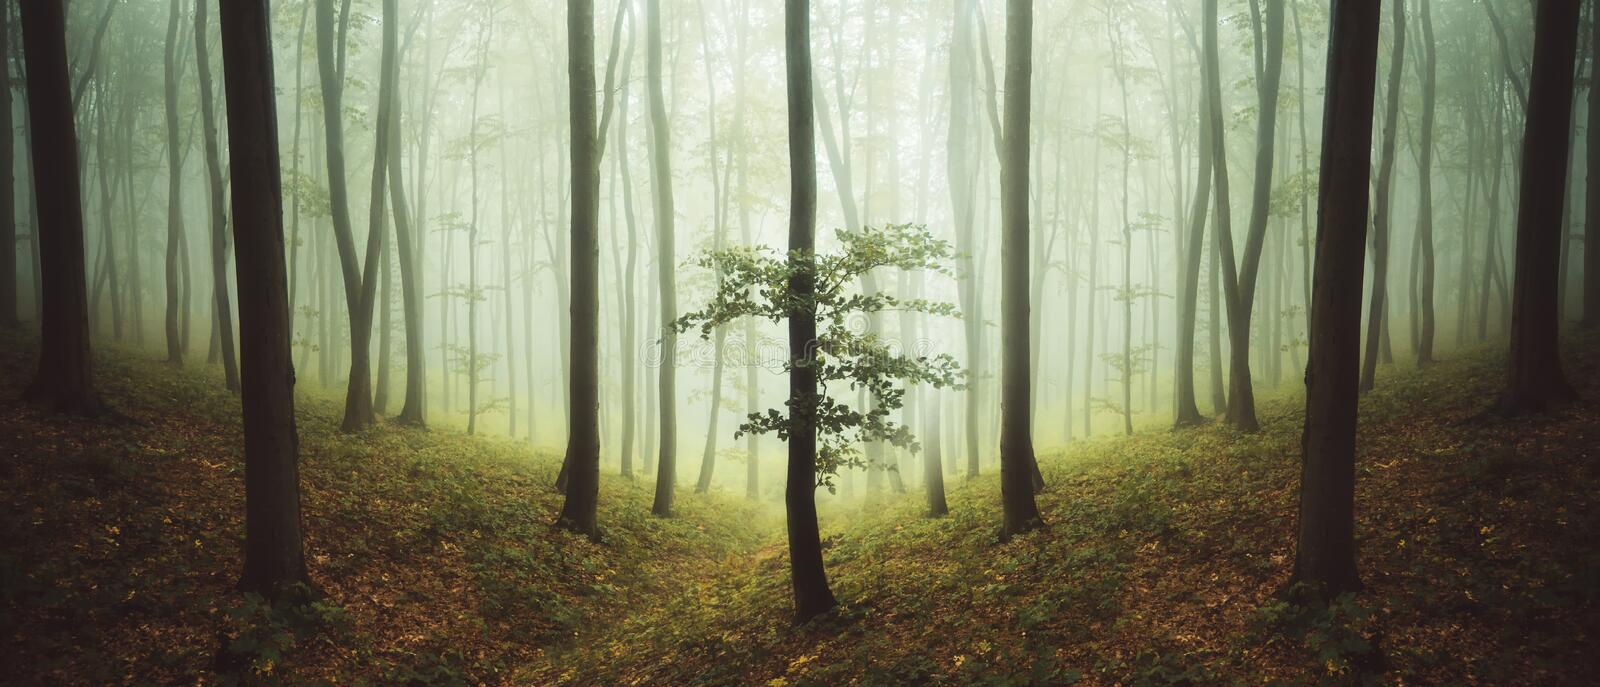 Surreal symmetrical forest with fog stock image